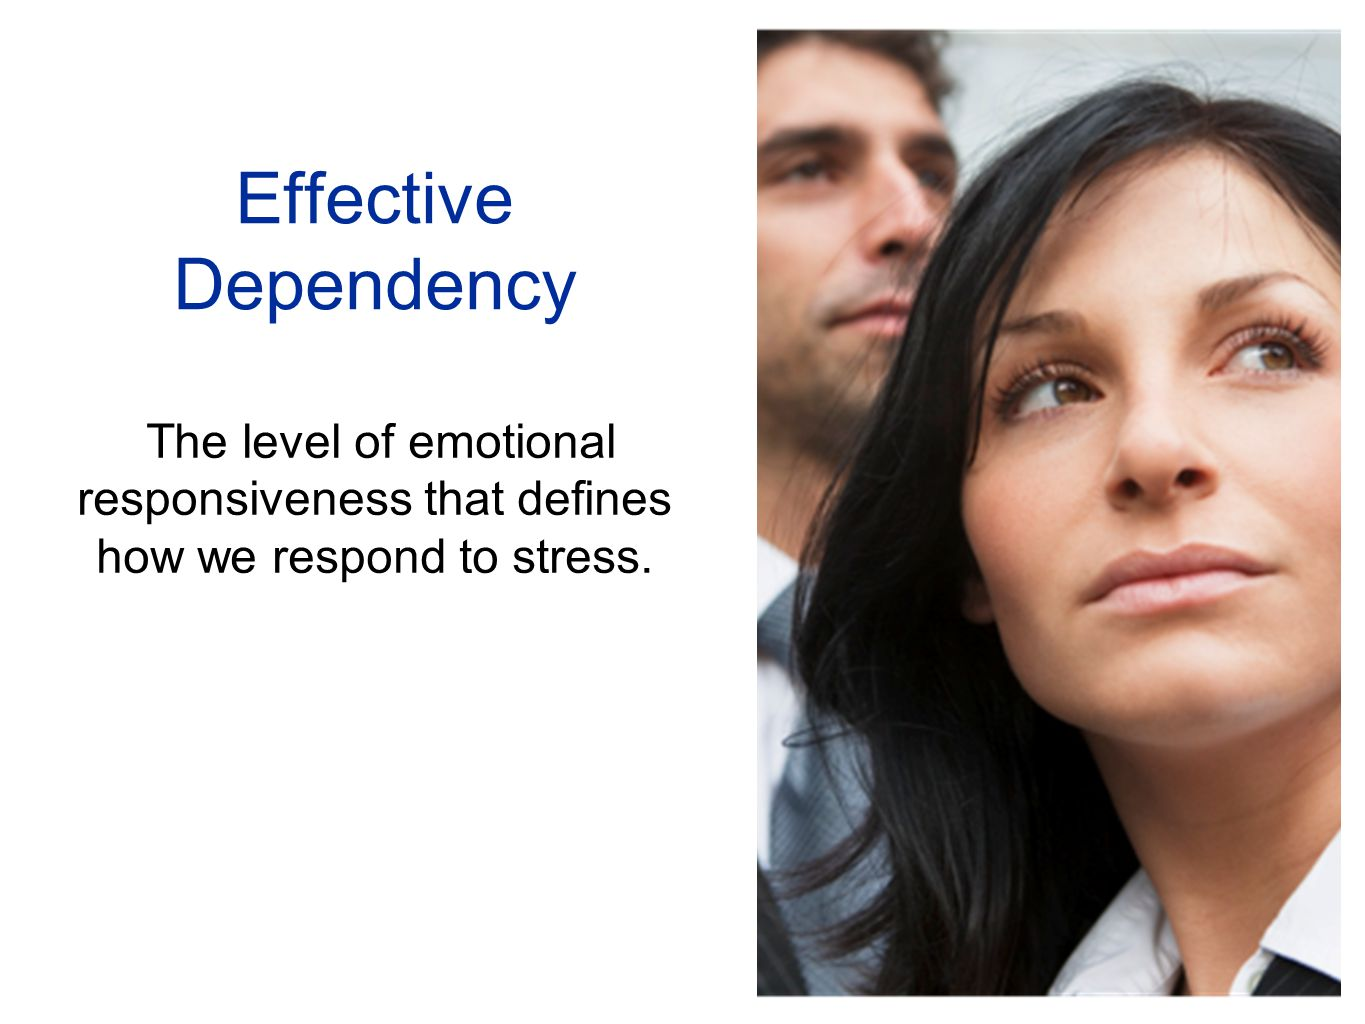 Effective Dependency The level of emotional responsiveness that defines how we respond to stress.